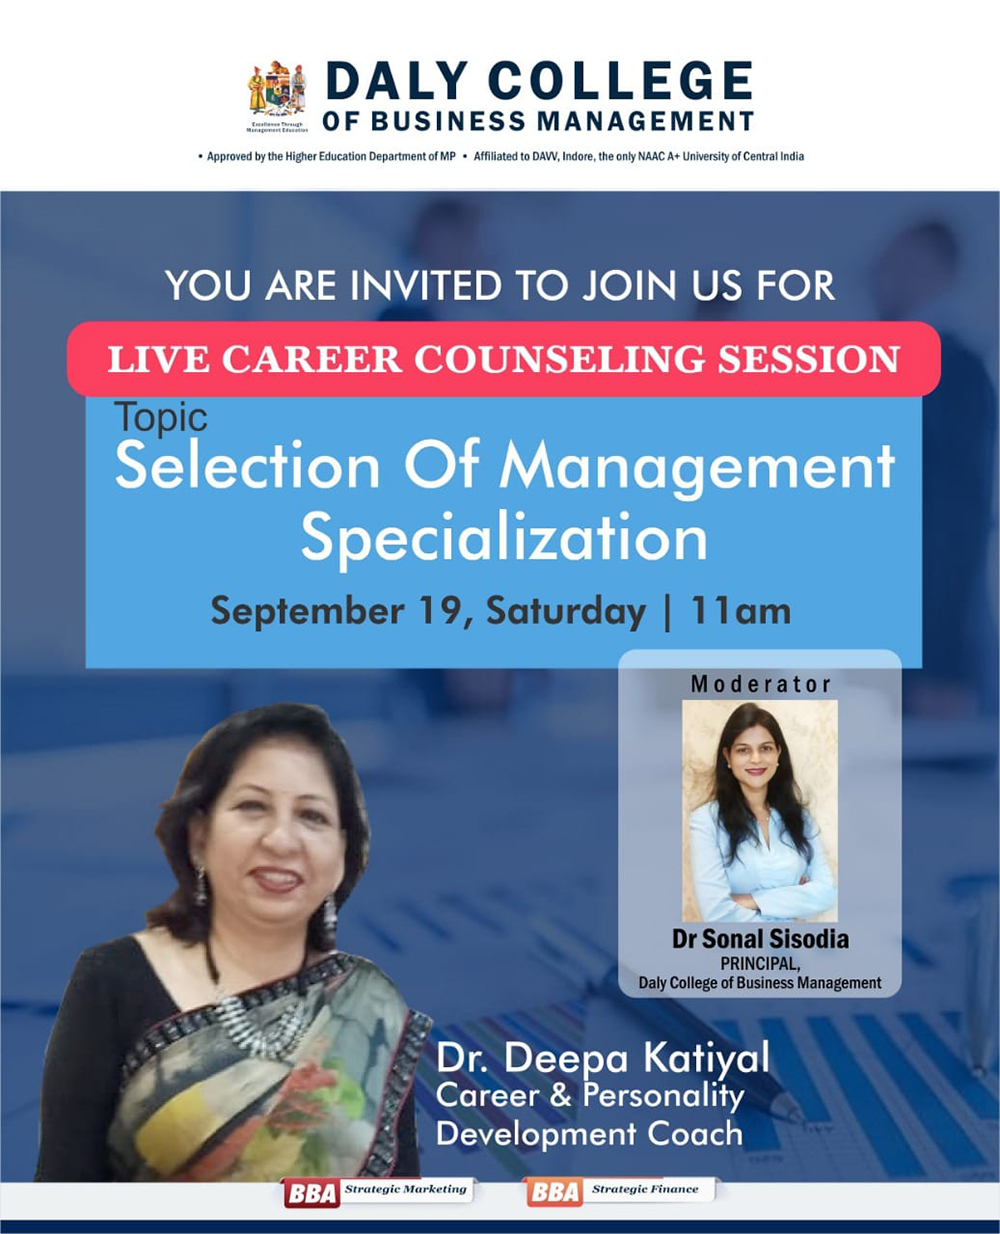 Career Counselling Session by Dr Deepa Katiyal